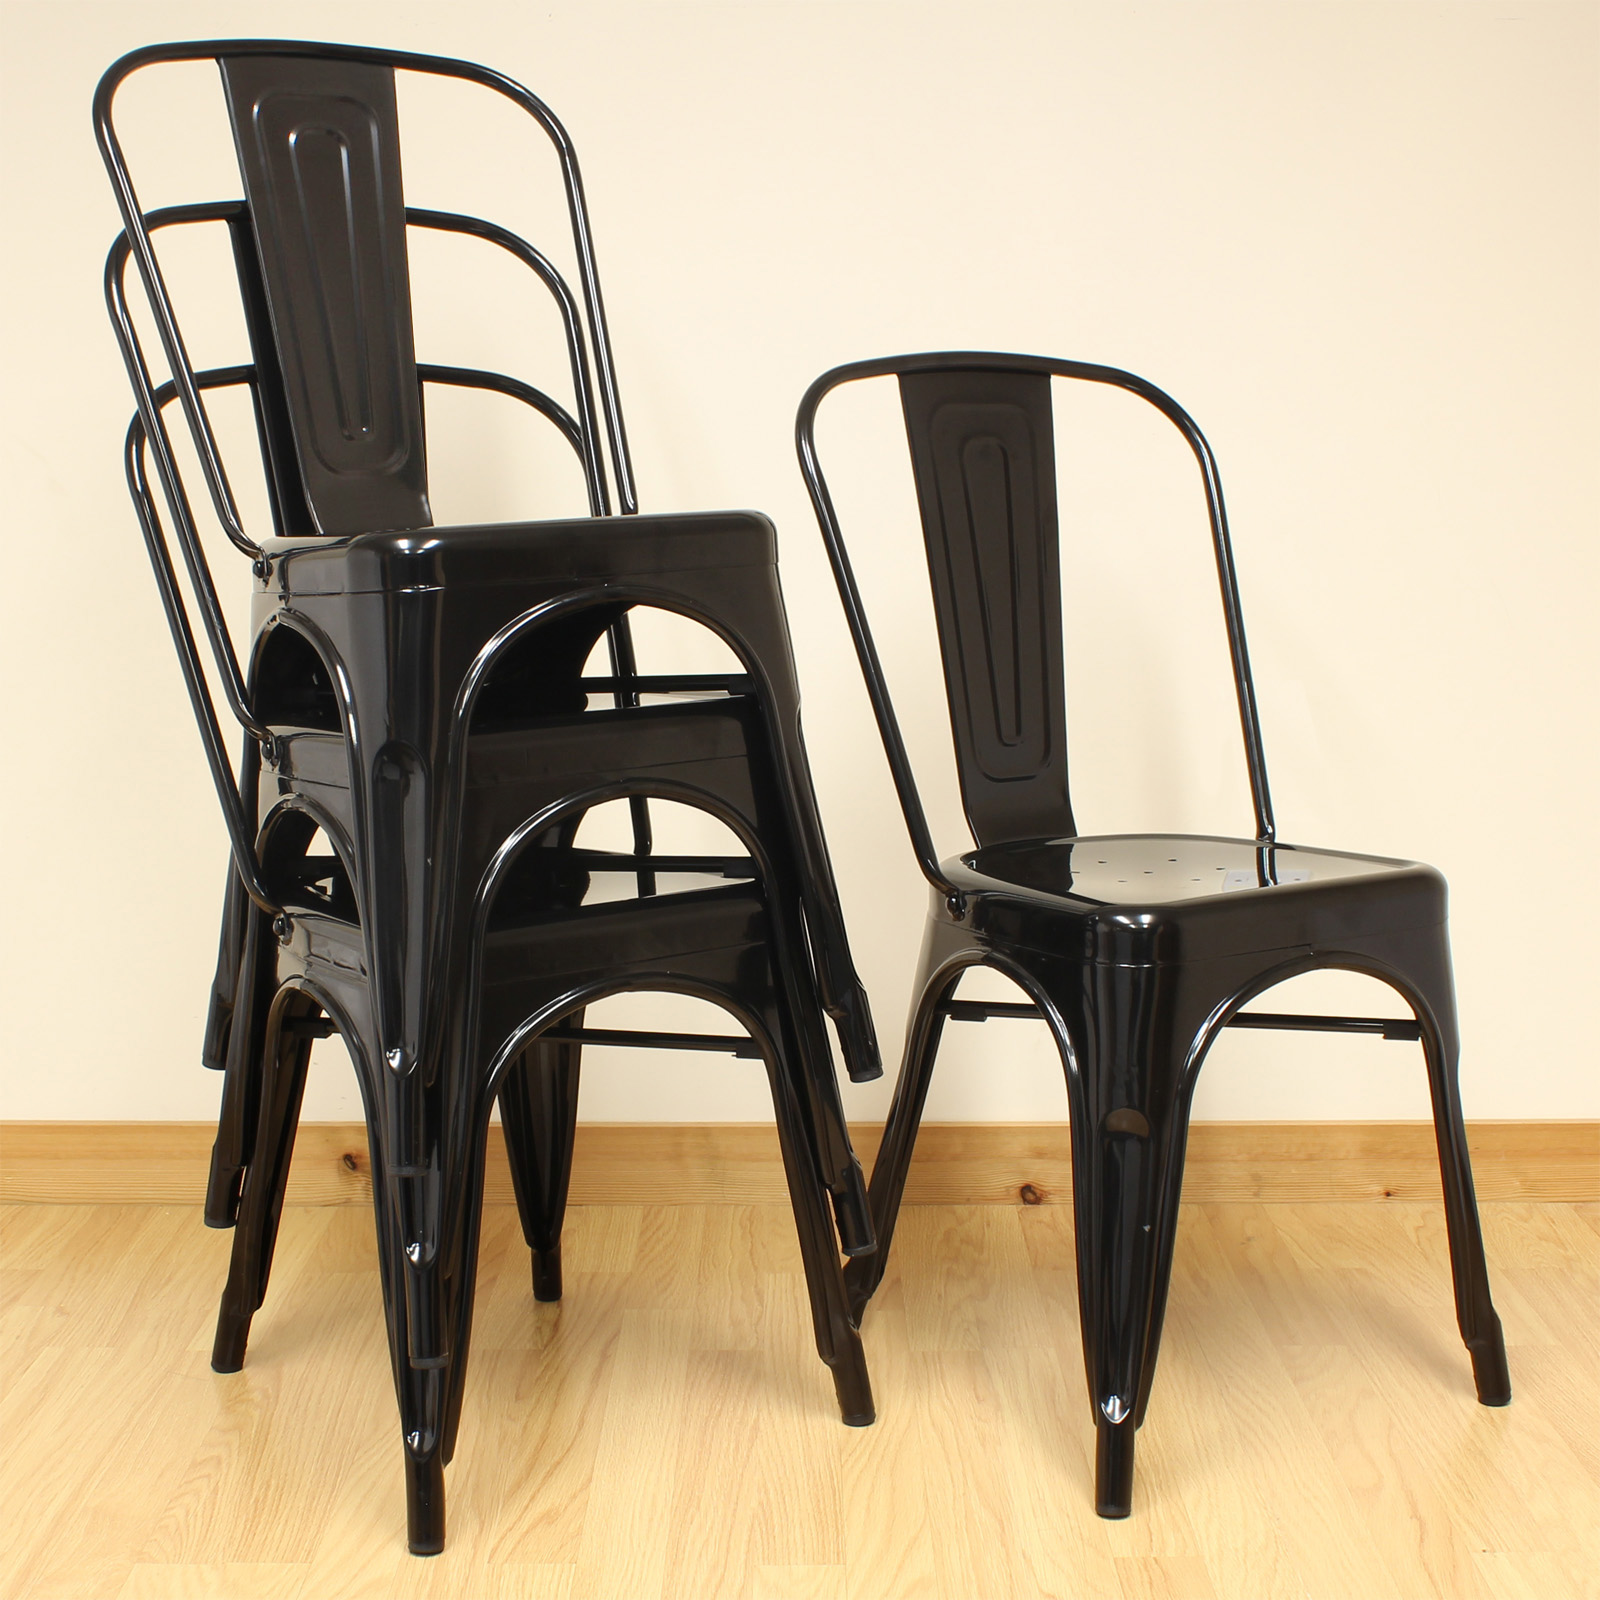 Black Metal Dining Chairs 4 Hartleys Black Metal Industrial Dining Chair Kitchen